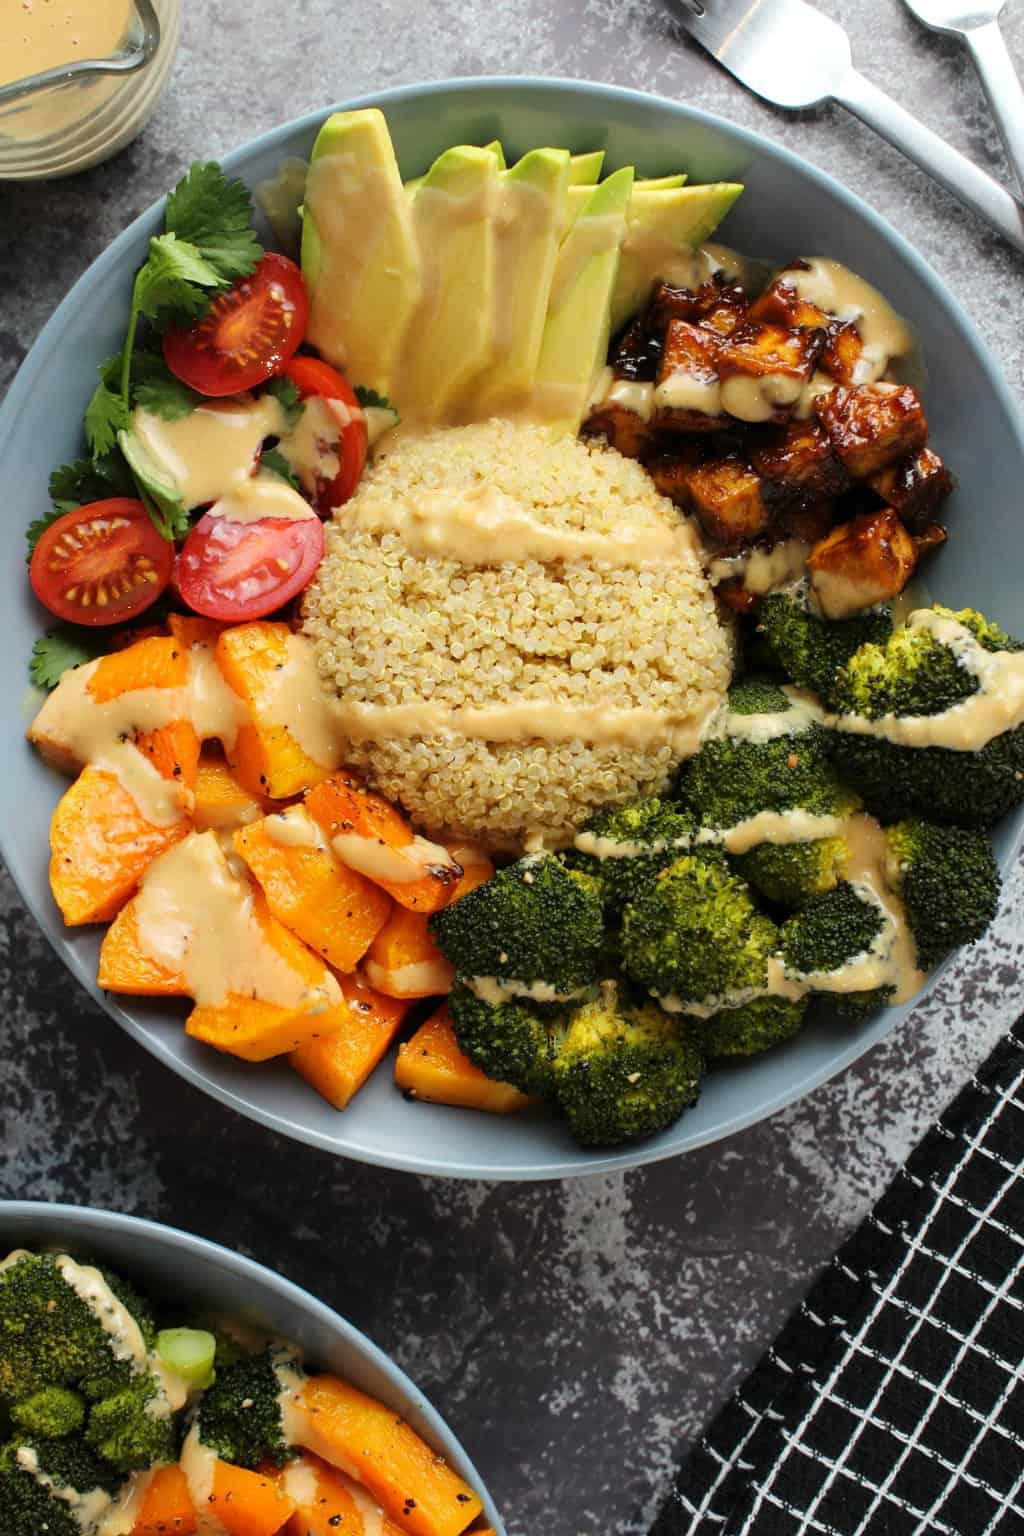 Quinoa, tofu and vegetables in a blue bowl.